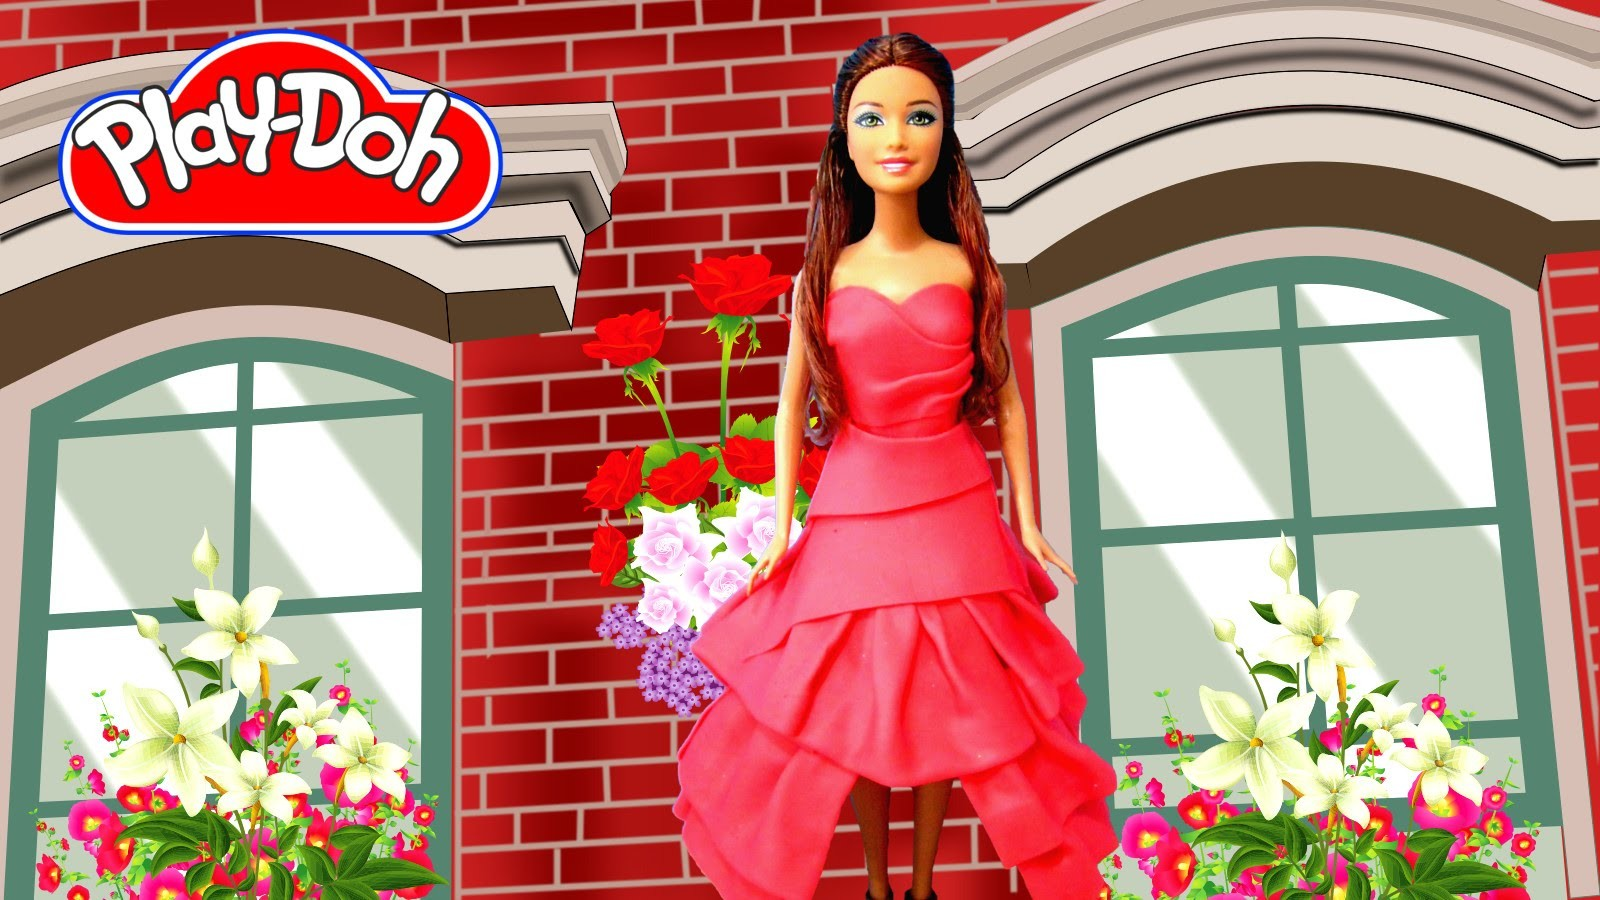 Play Doh Ariana Grande - Put Your Hearts Up Inspired Costume Play-Doh Craft N Toys